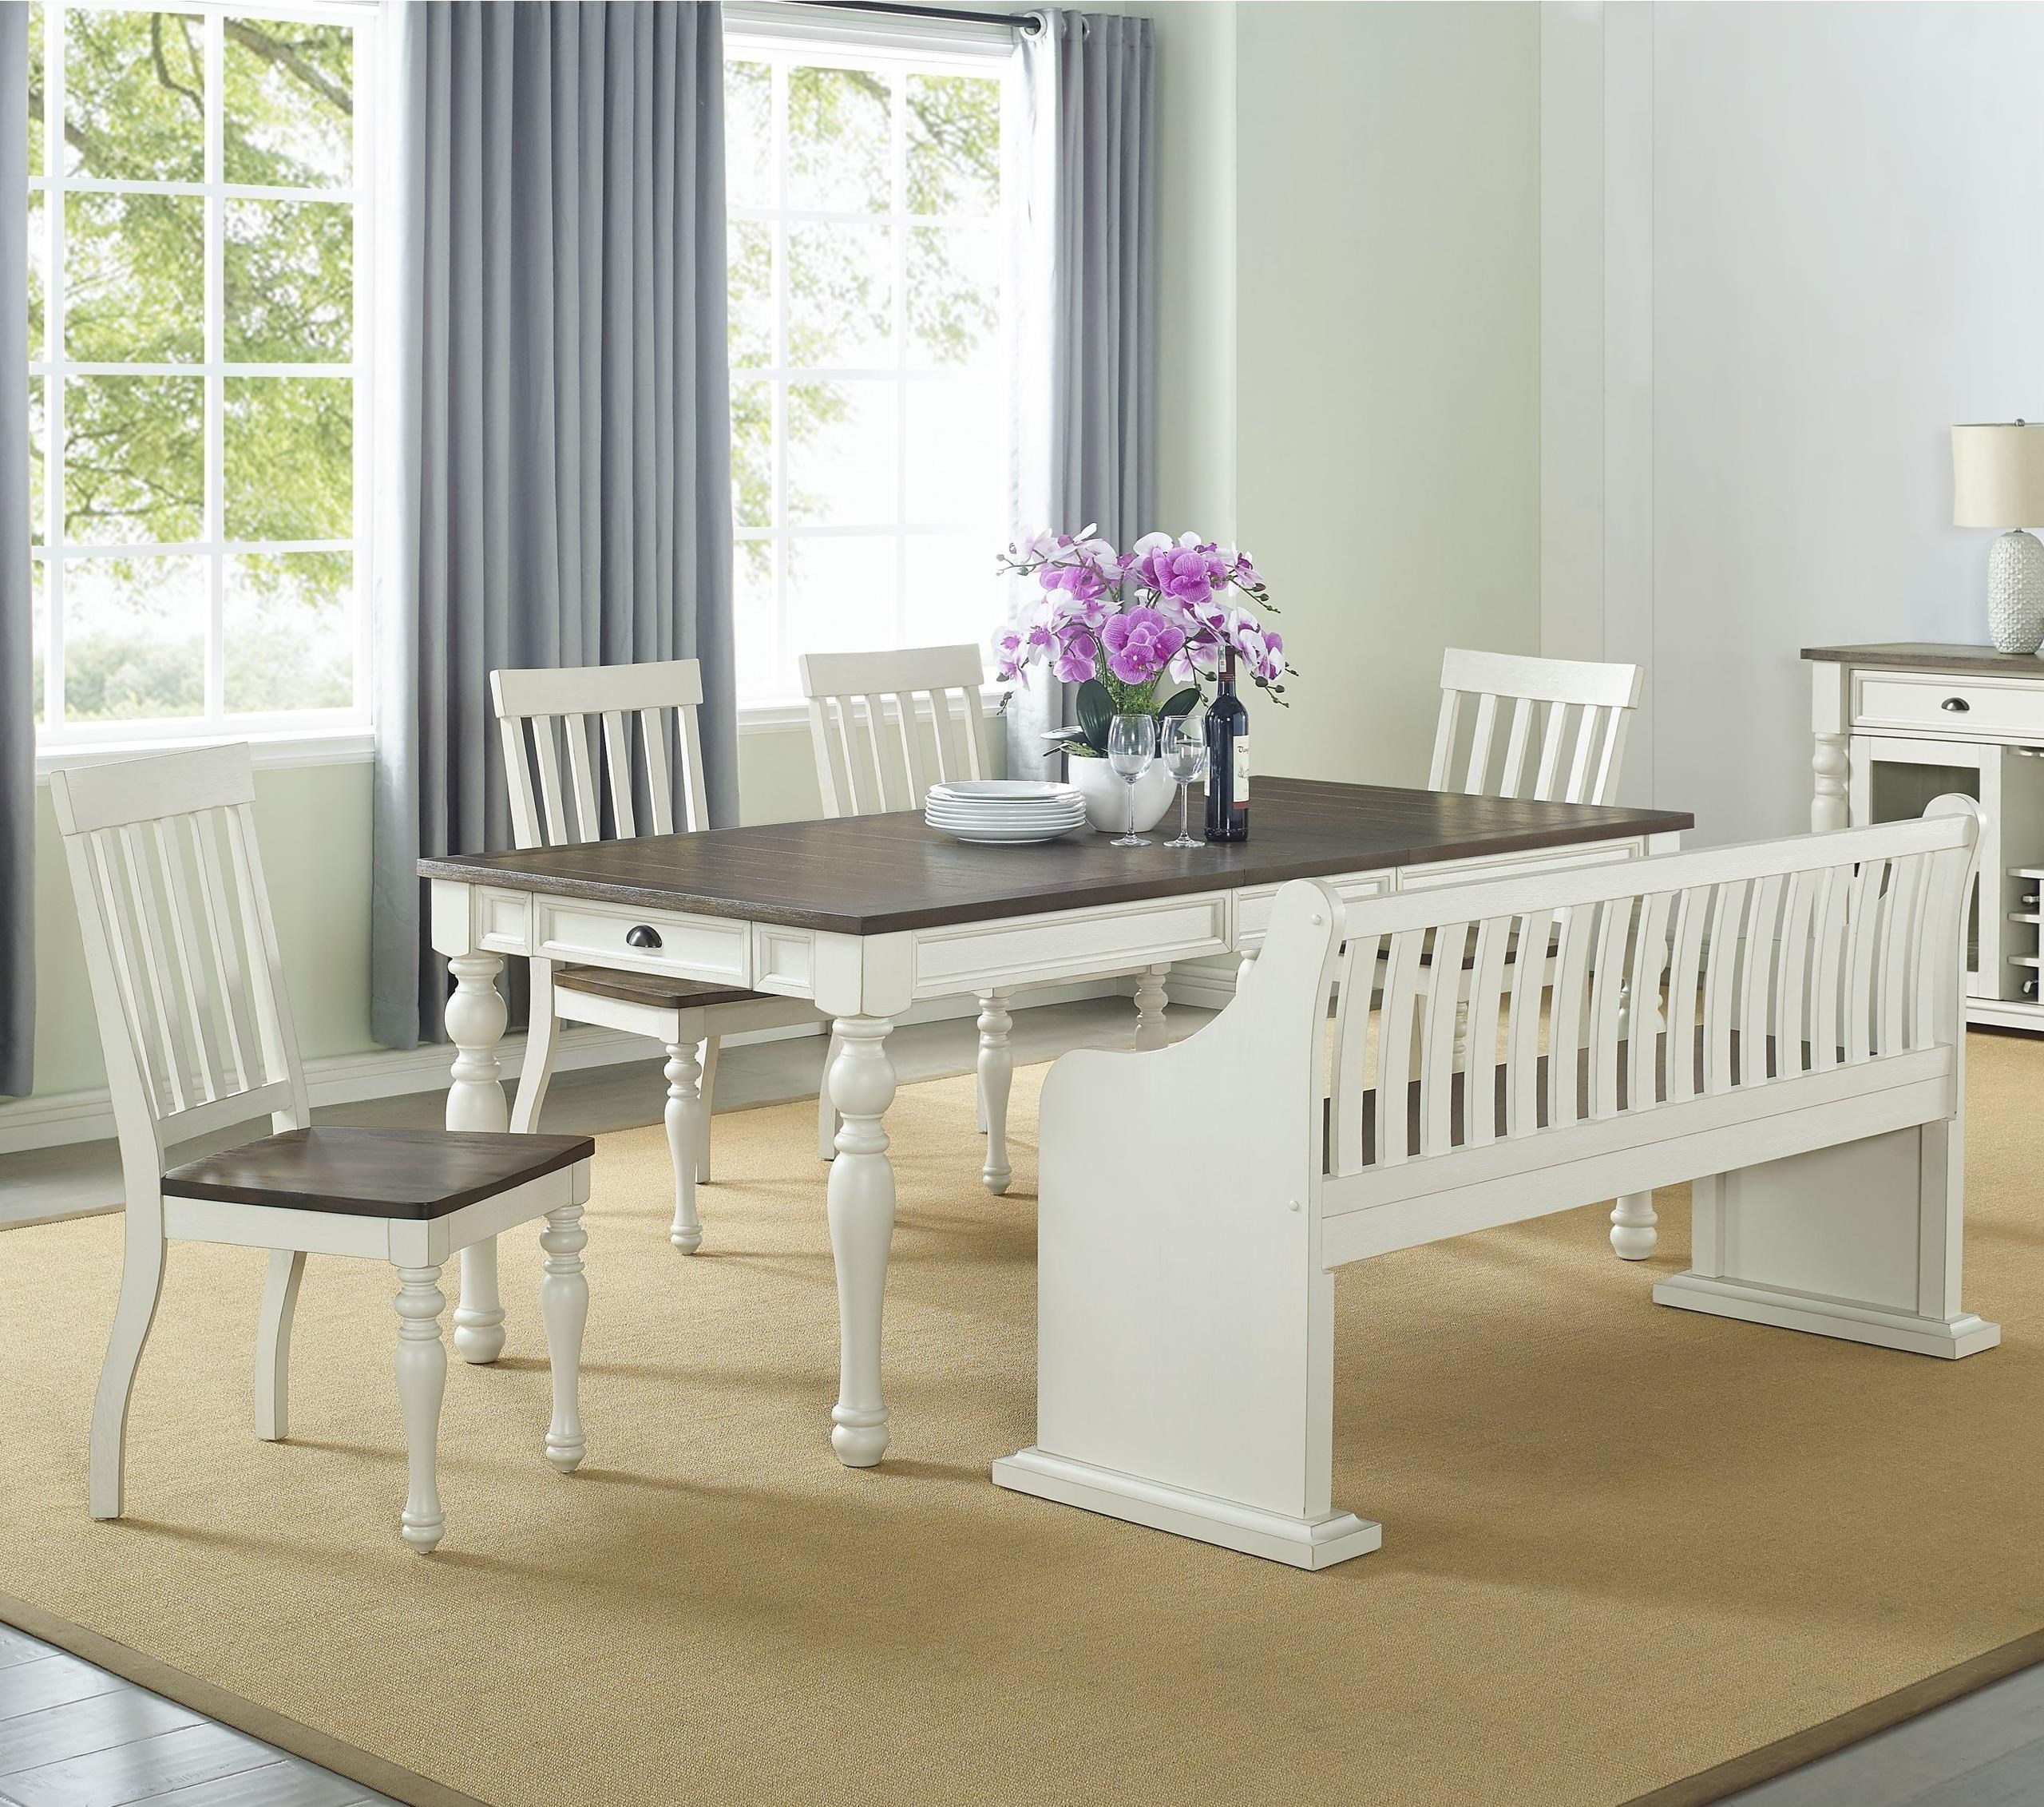 Star Petunia Ja500t Ja500bnb 4xja500s Farmhouse Dining Set With Bench With Back Efo Furniture Outlet Table Chair Set With Bench